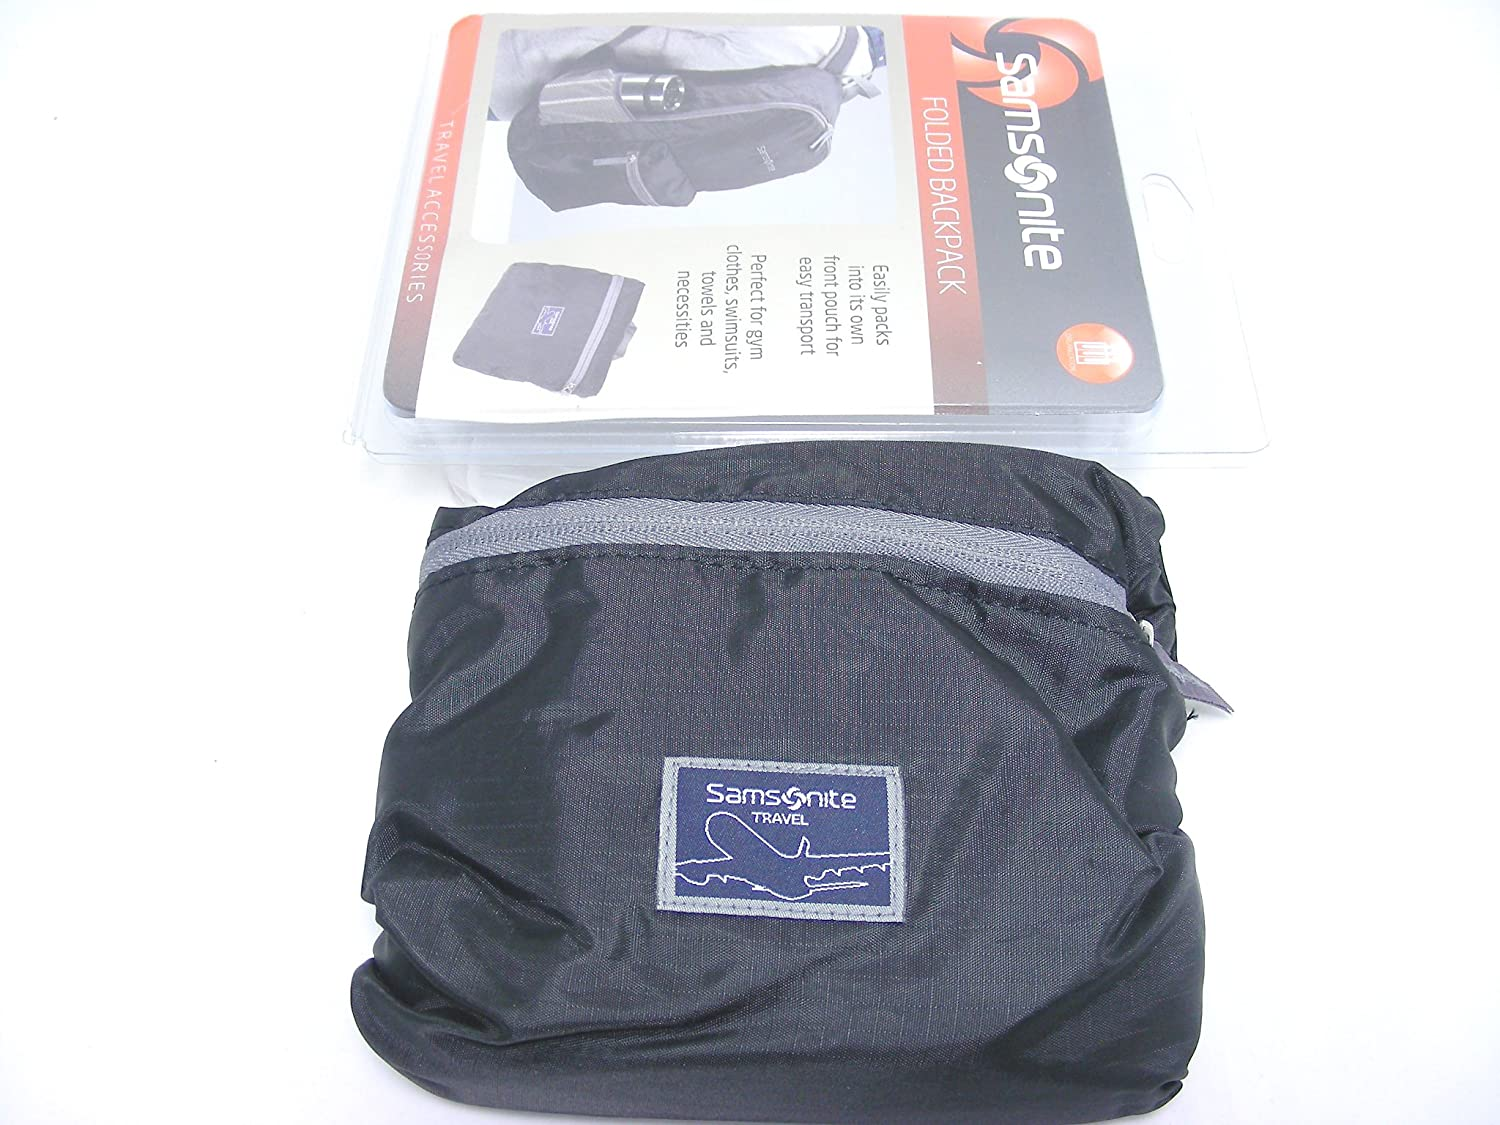 Samsonite Travel Folded Foldable Backpack with Transport Pouch